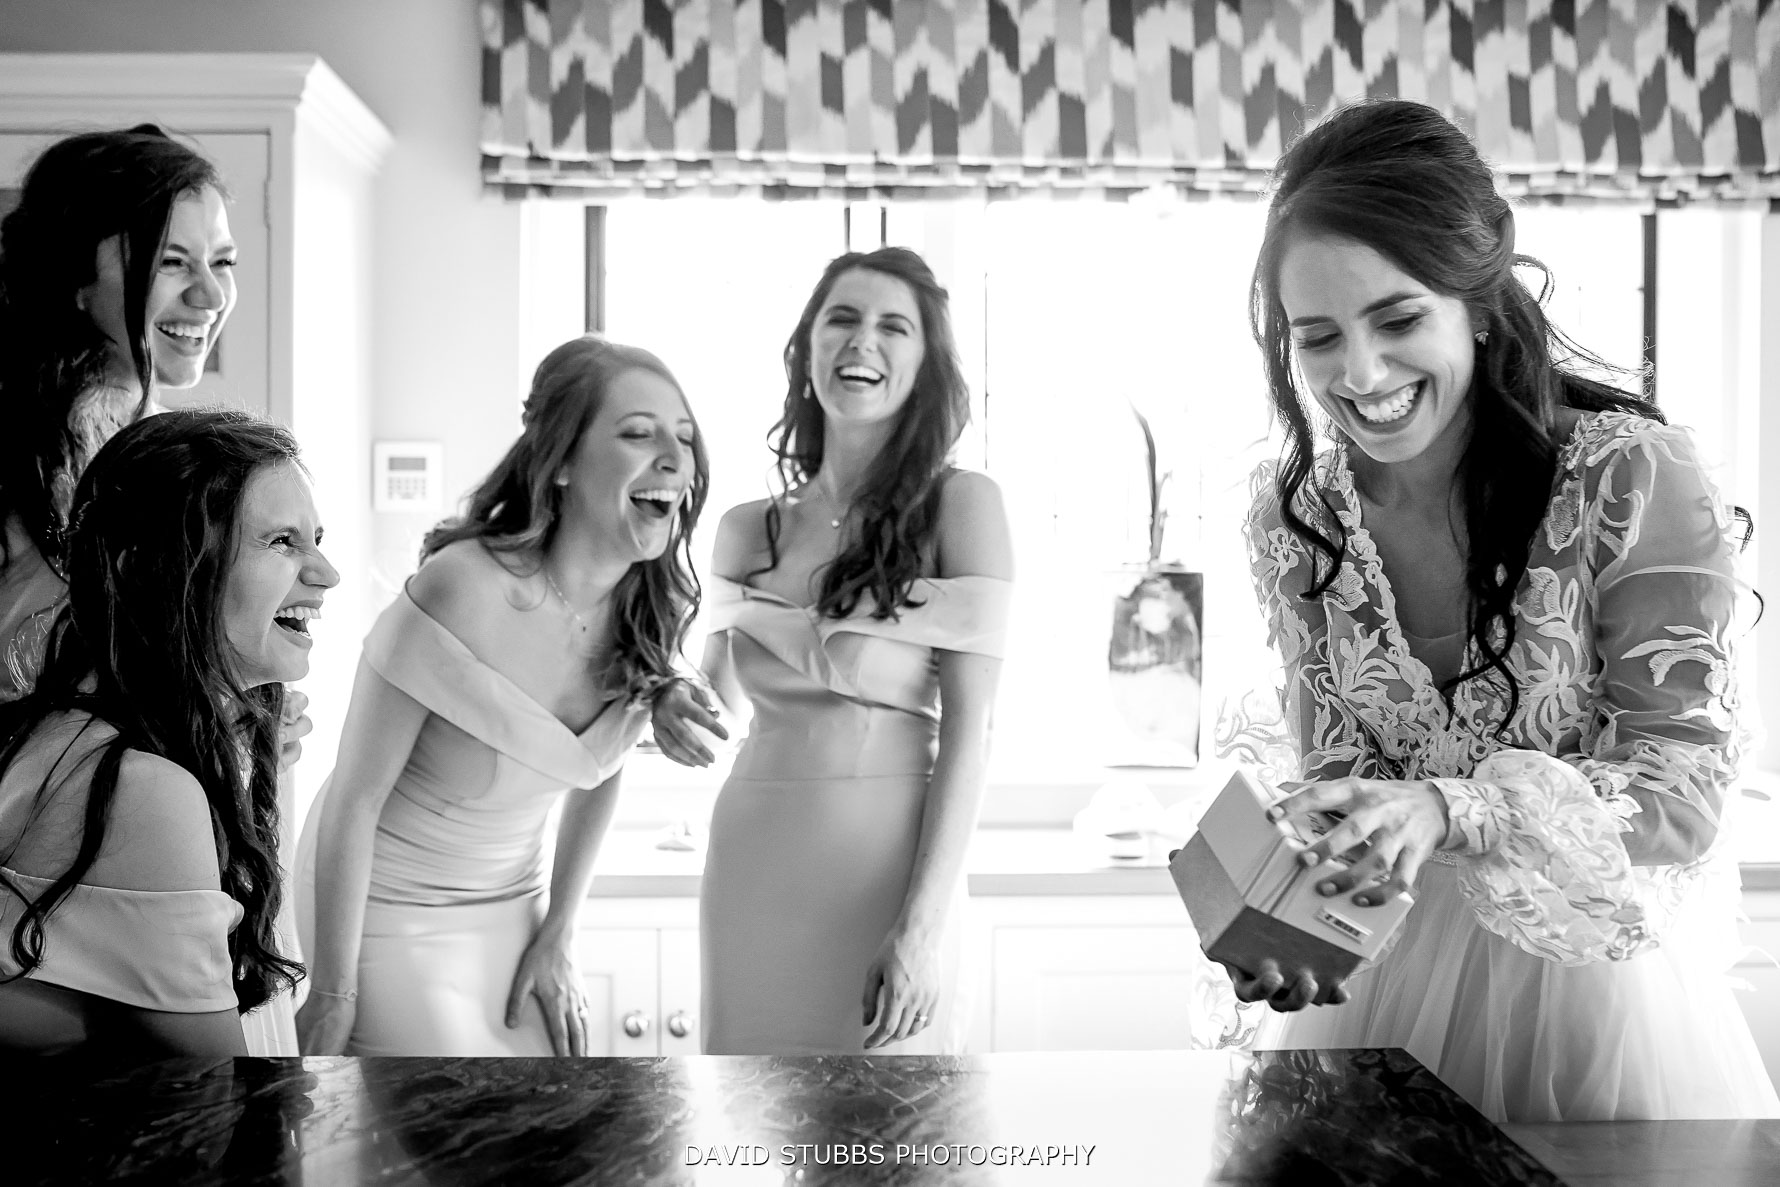 gifts being given to the bridesmaids